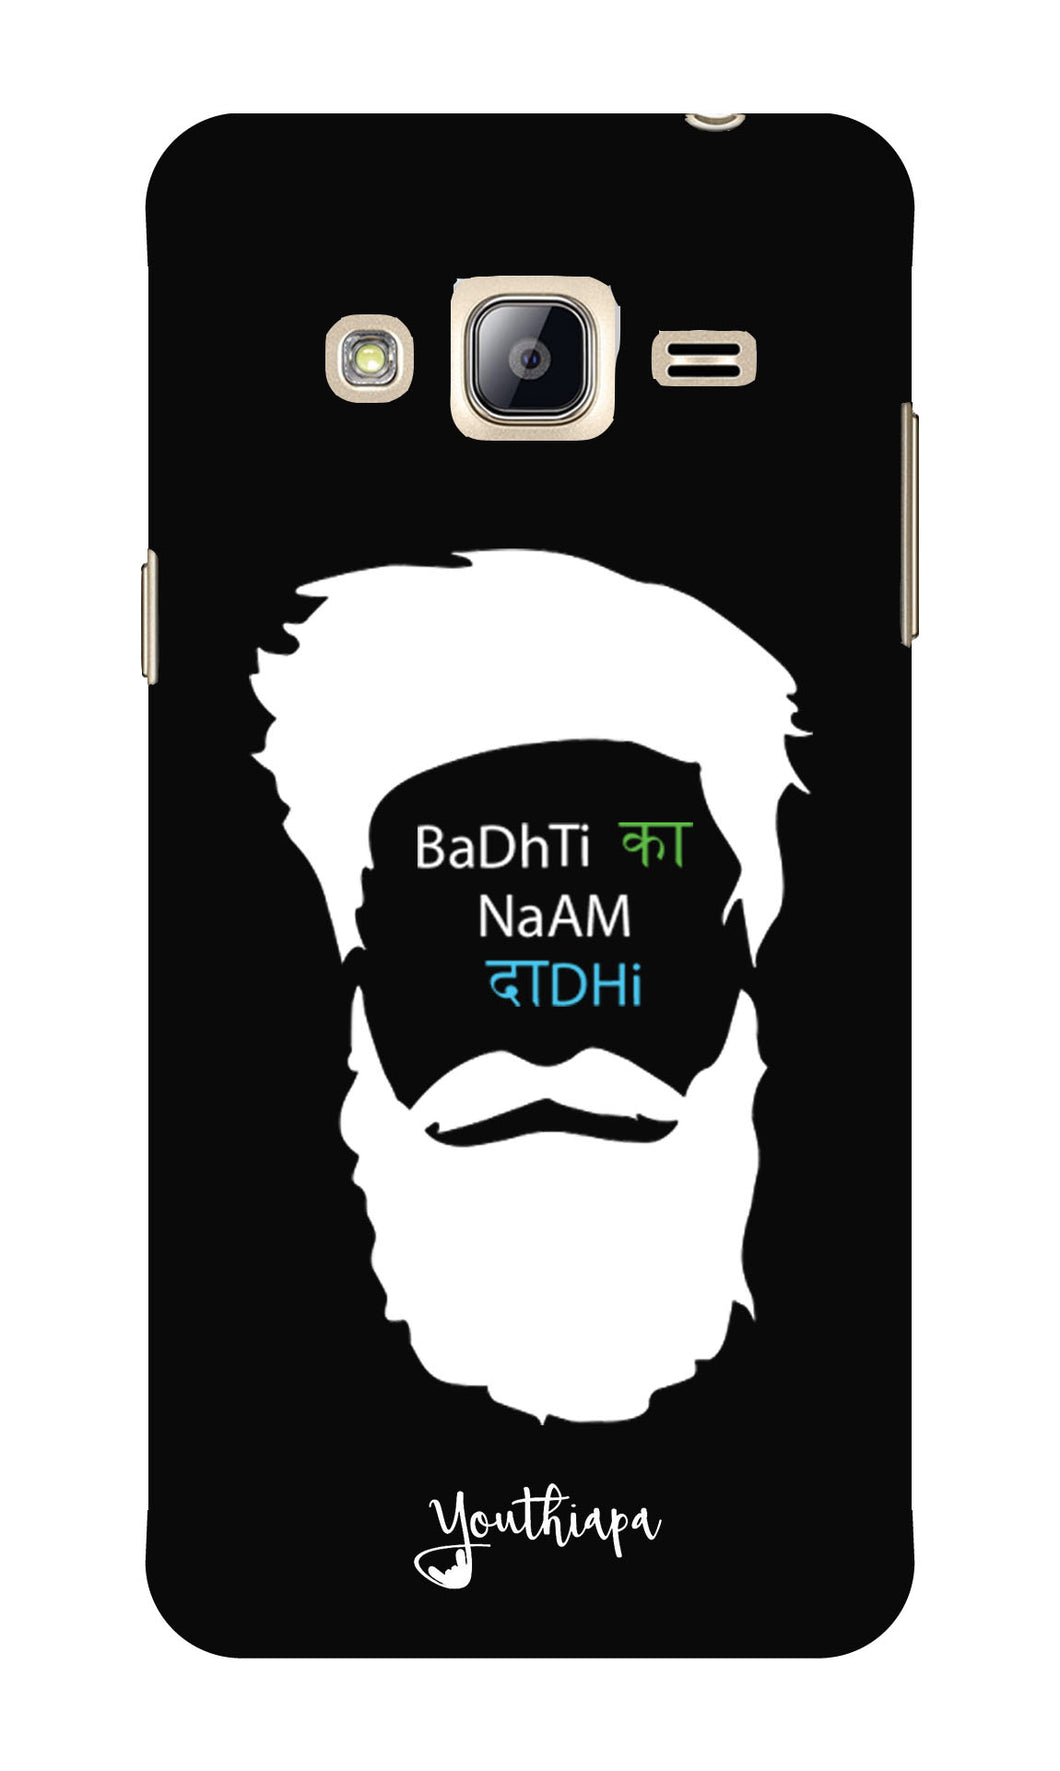 The Beard Edition for SAMSUNG GALAXY J 3 2016